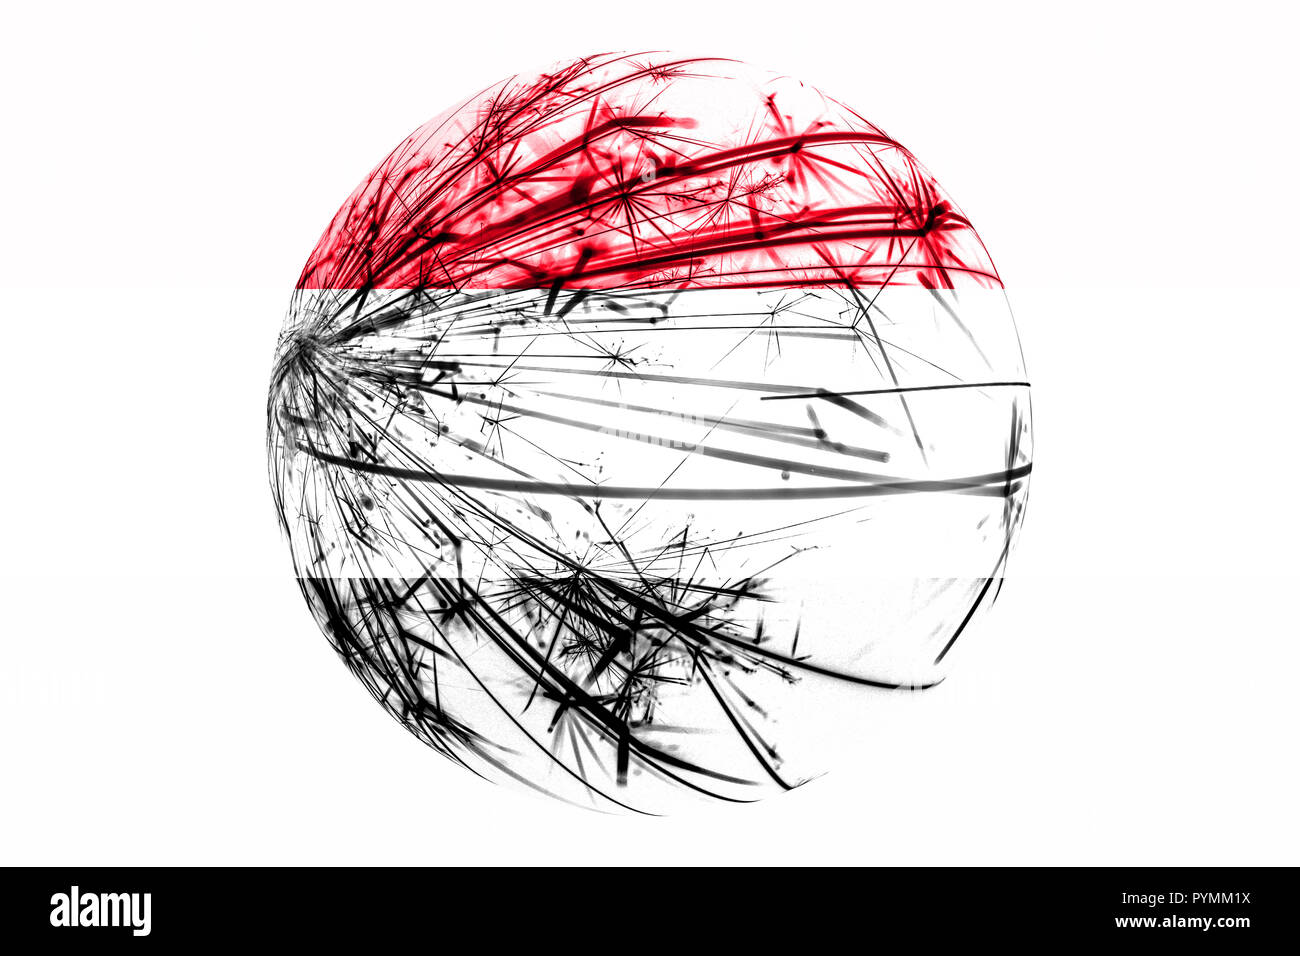 Abstract Yemen sparkling flag, Christmas ball concept isolated on white background - Stock Image